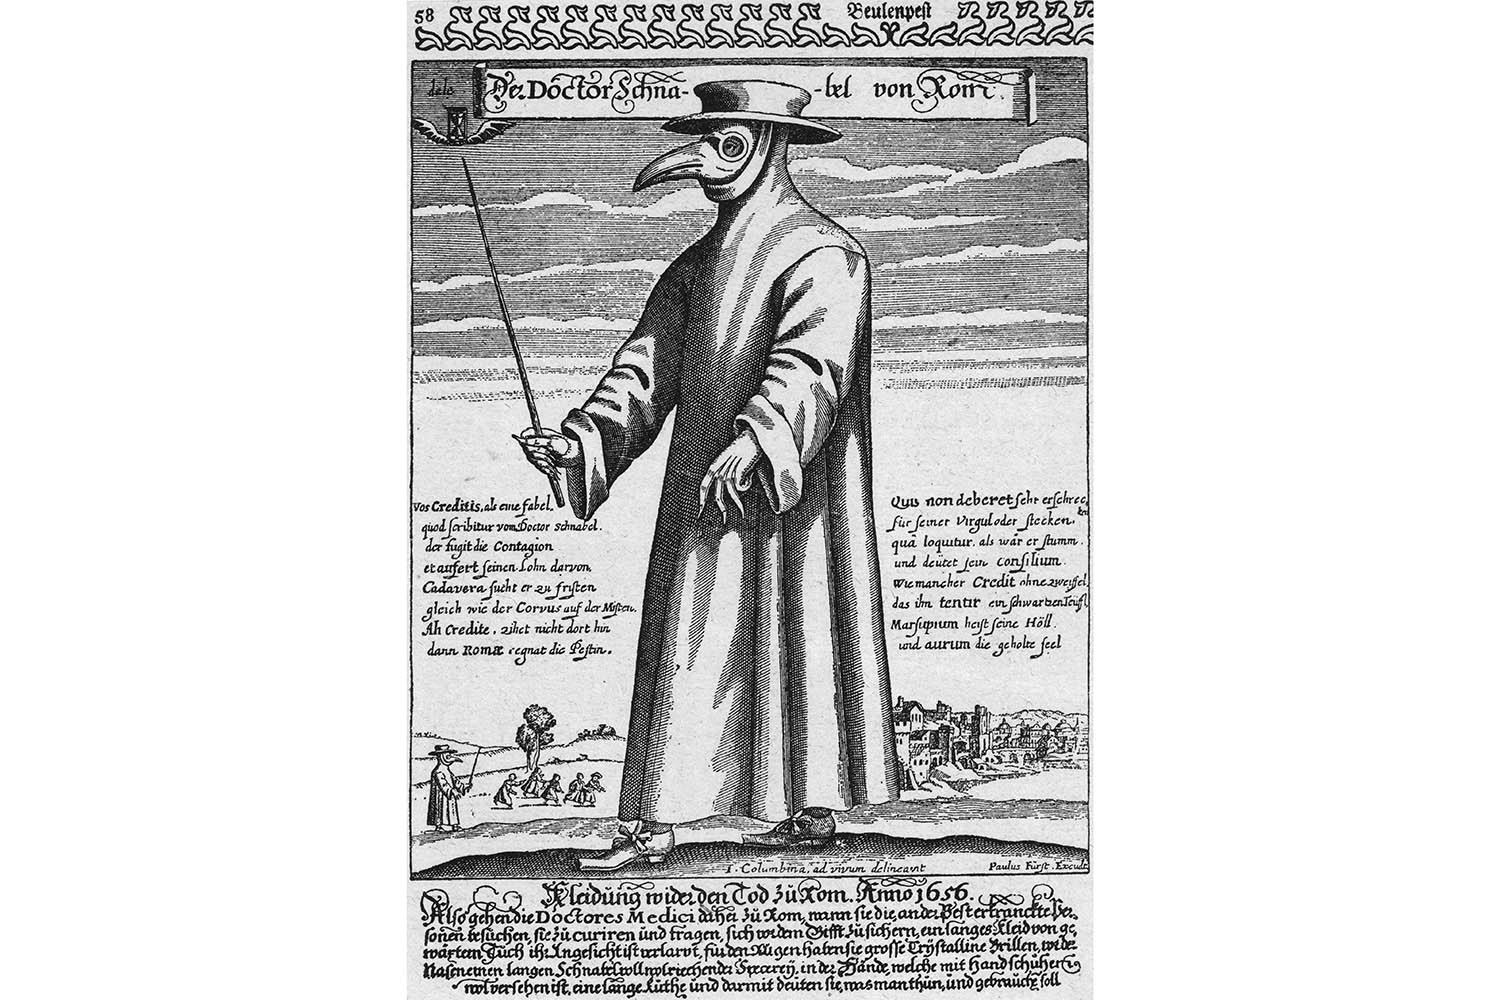 A plague doctor in protective clothing, circa 1656 . The beak mask held spices thought to purify air and the wand was used to avoid touching patients.